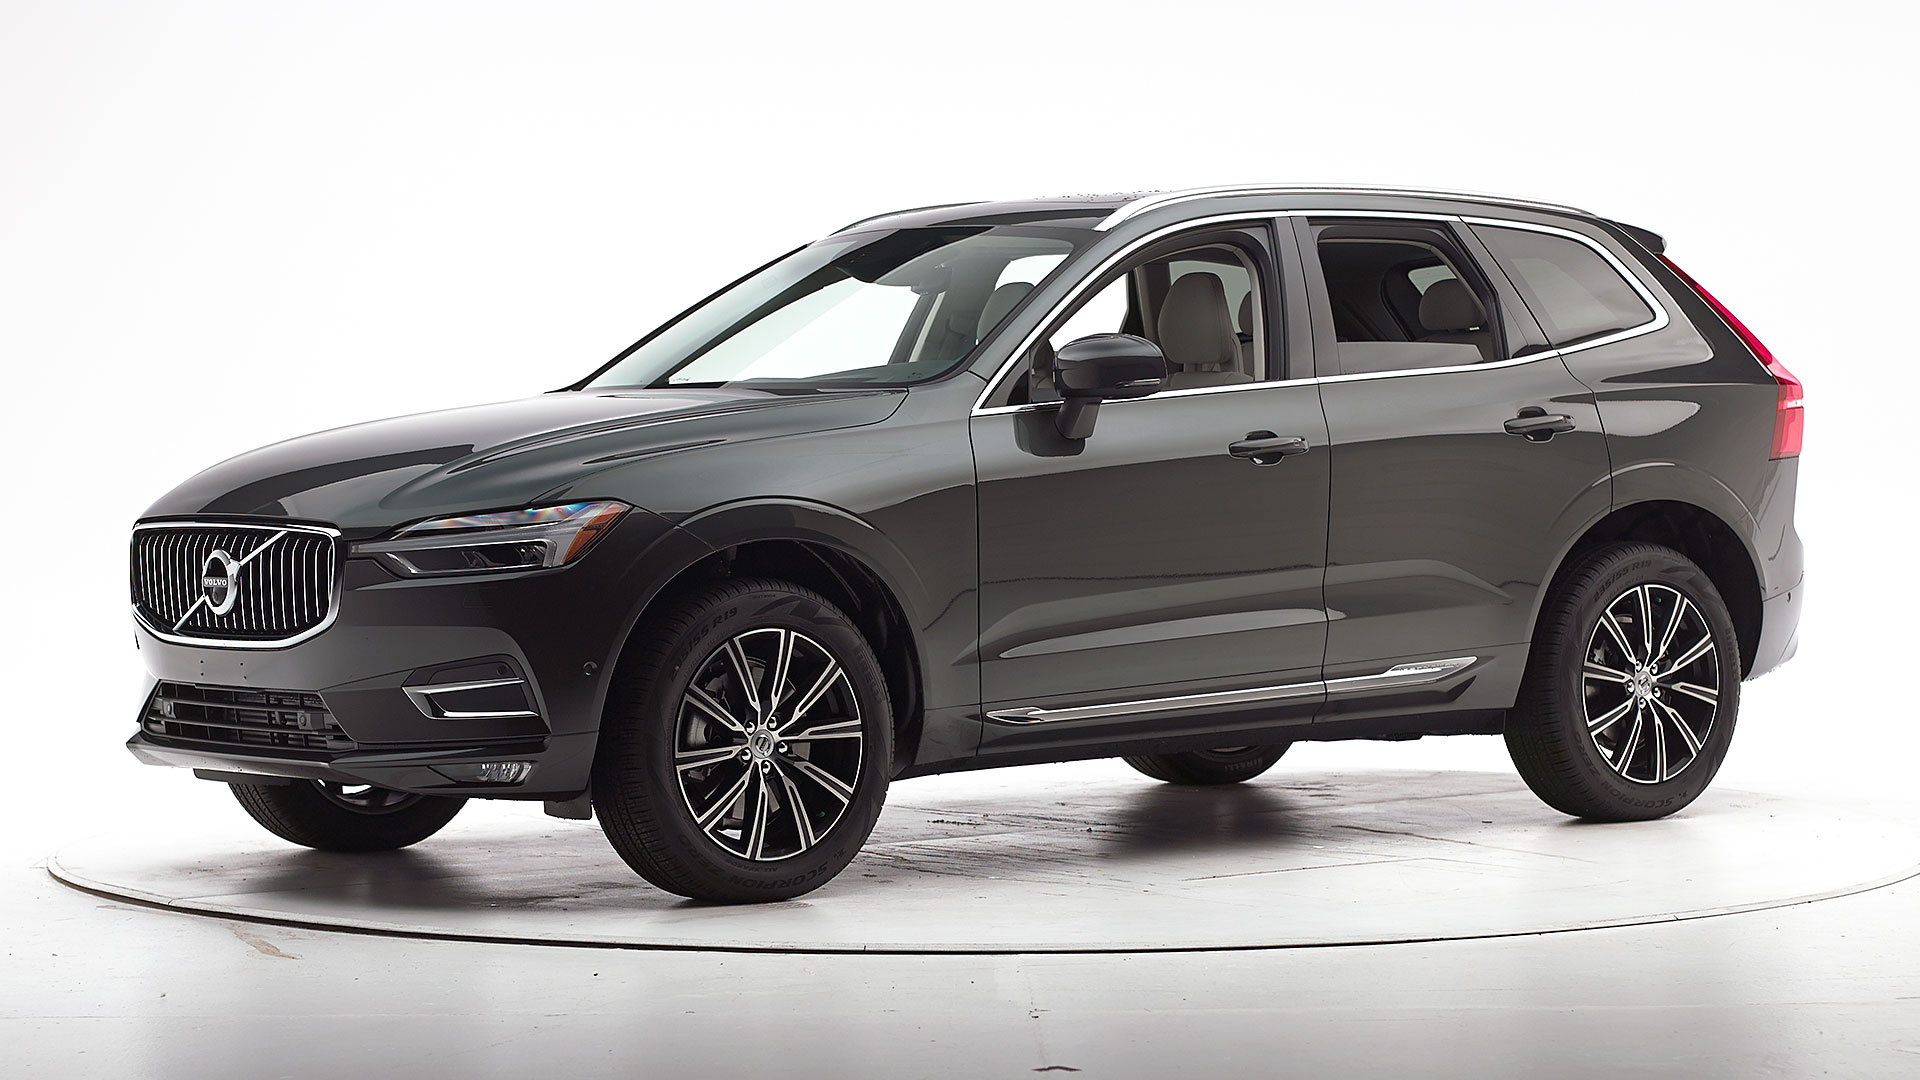 2018 Volvo XC60 4-door SUV